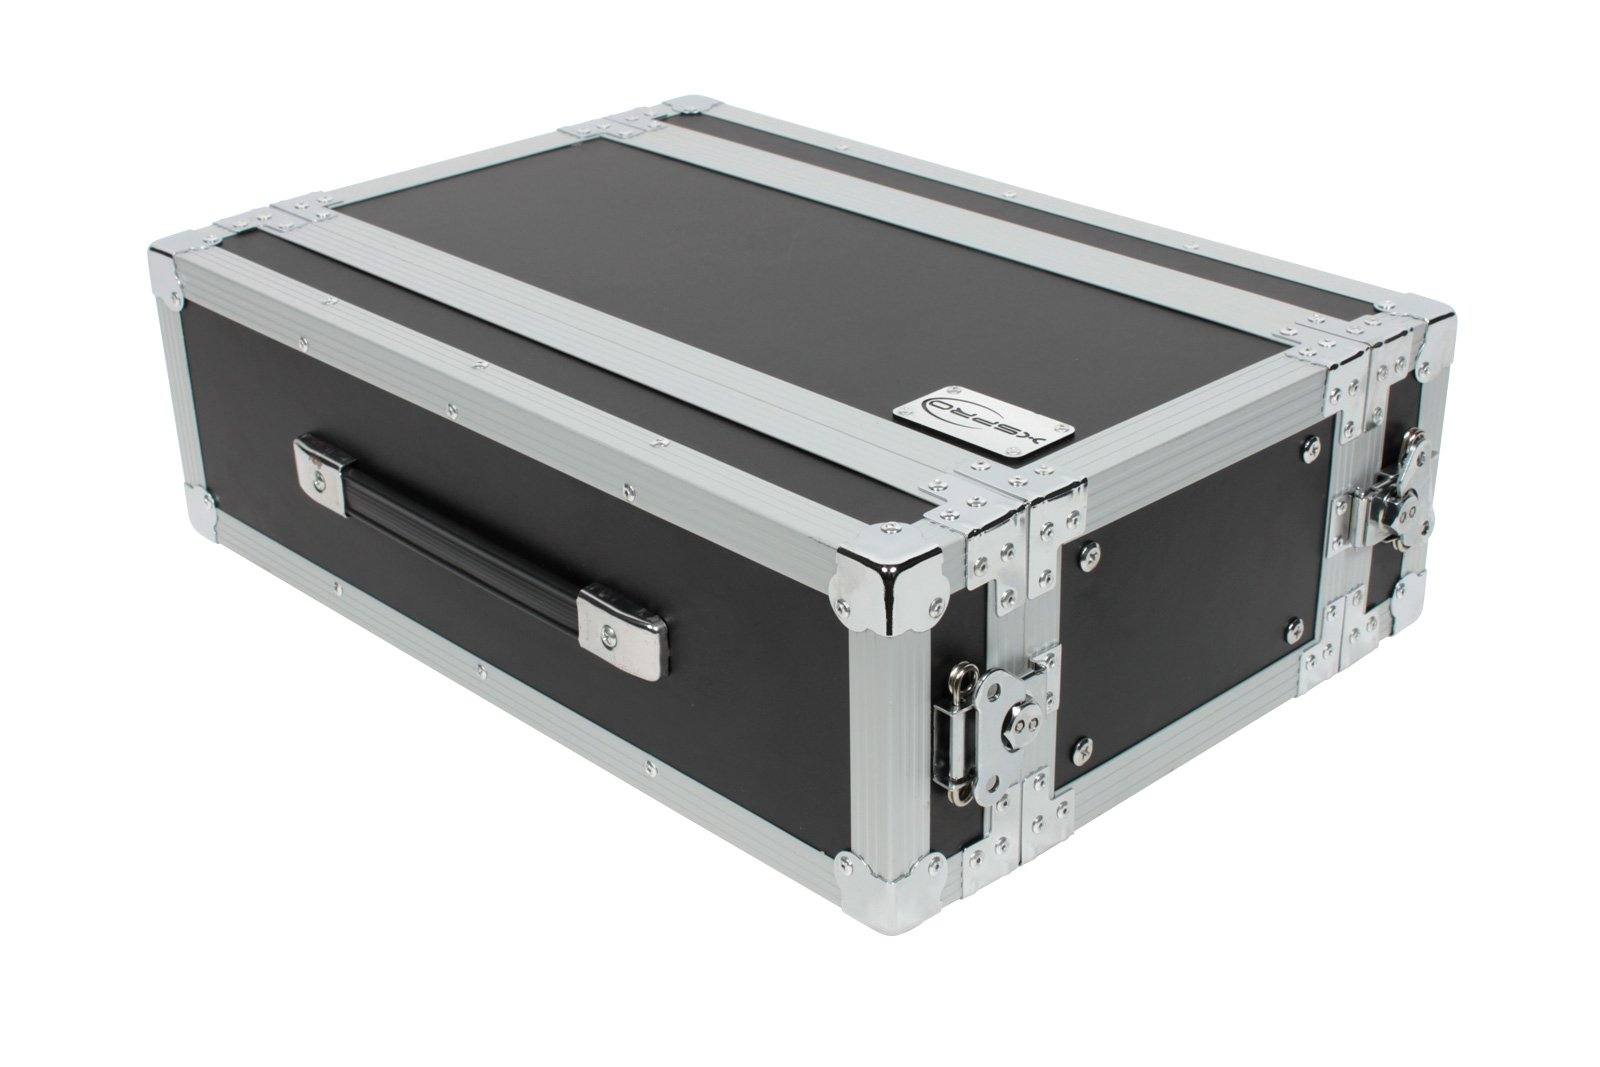 XSPRO XS3U-10 3 Space 3U ATA Effects Rack Flight Case Front and Back Rails - 19'' Wide by XSPRO